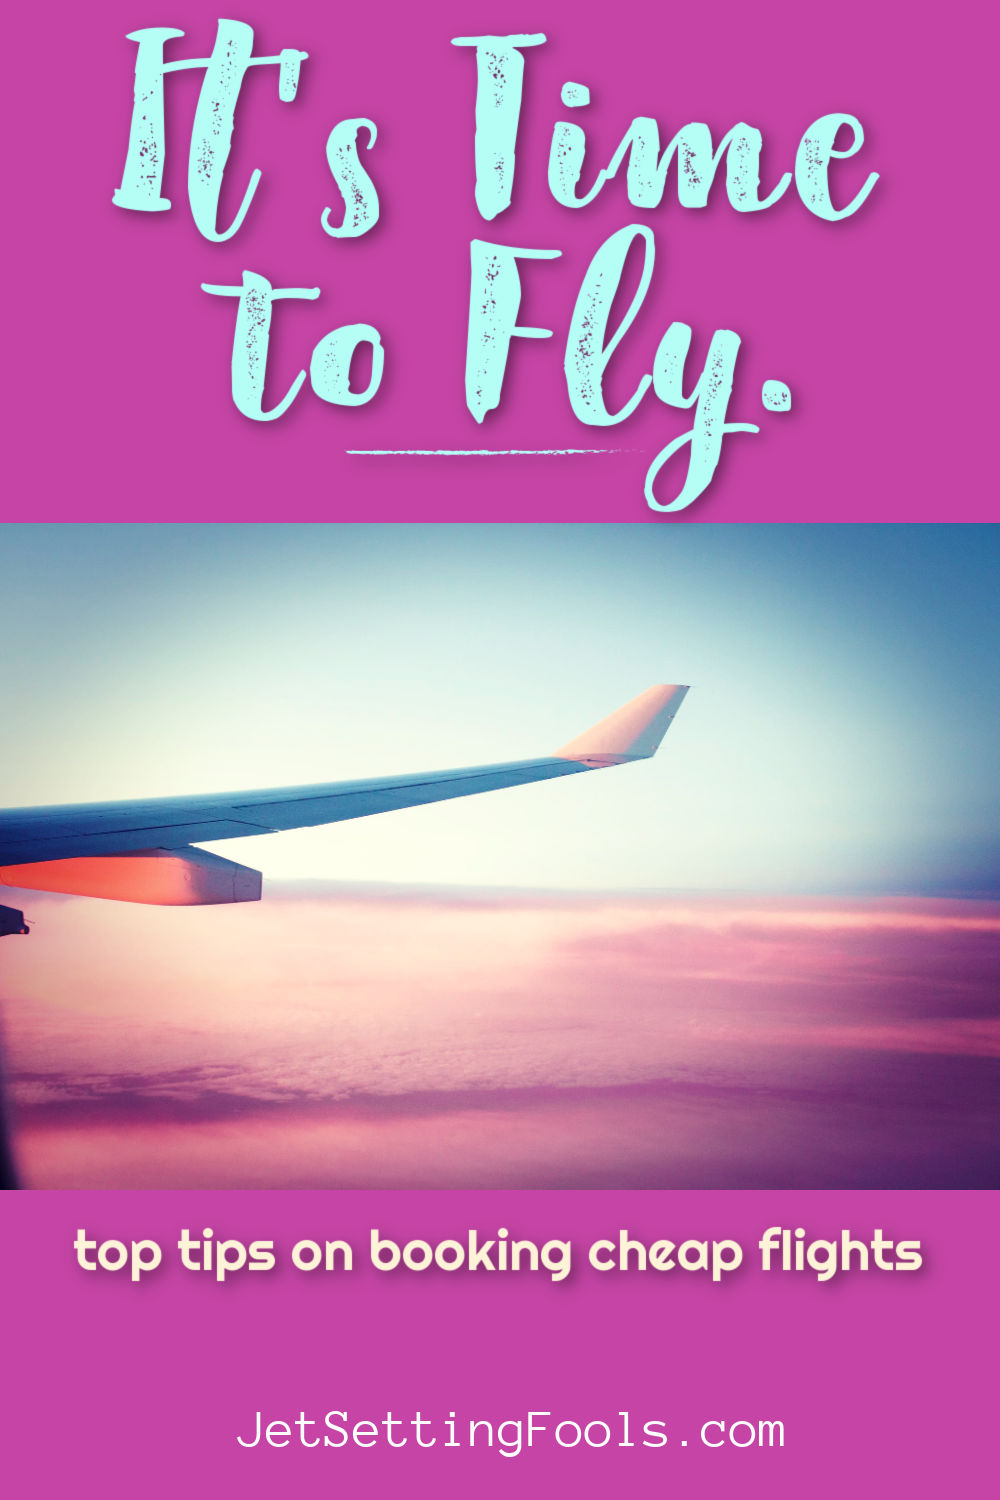 Top Tips on Booking Cheap Flights by JetSettingFools.com